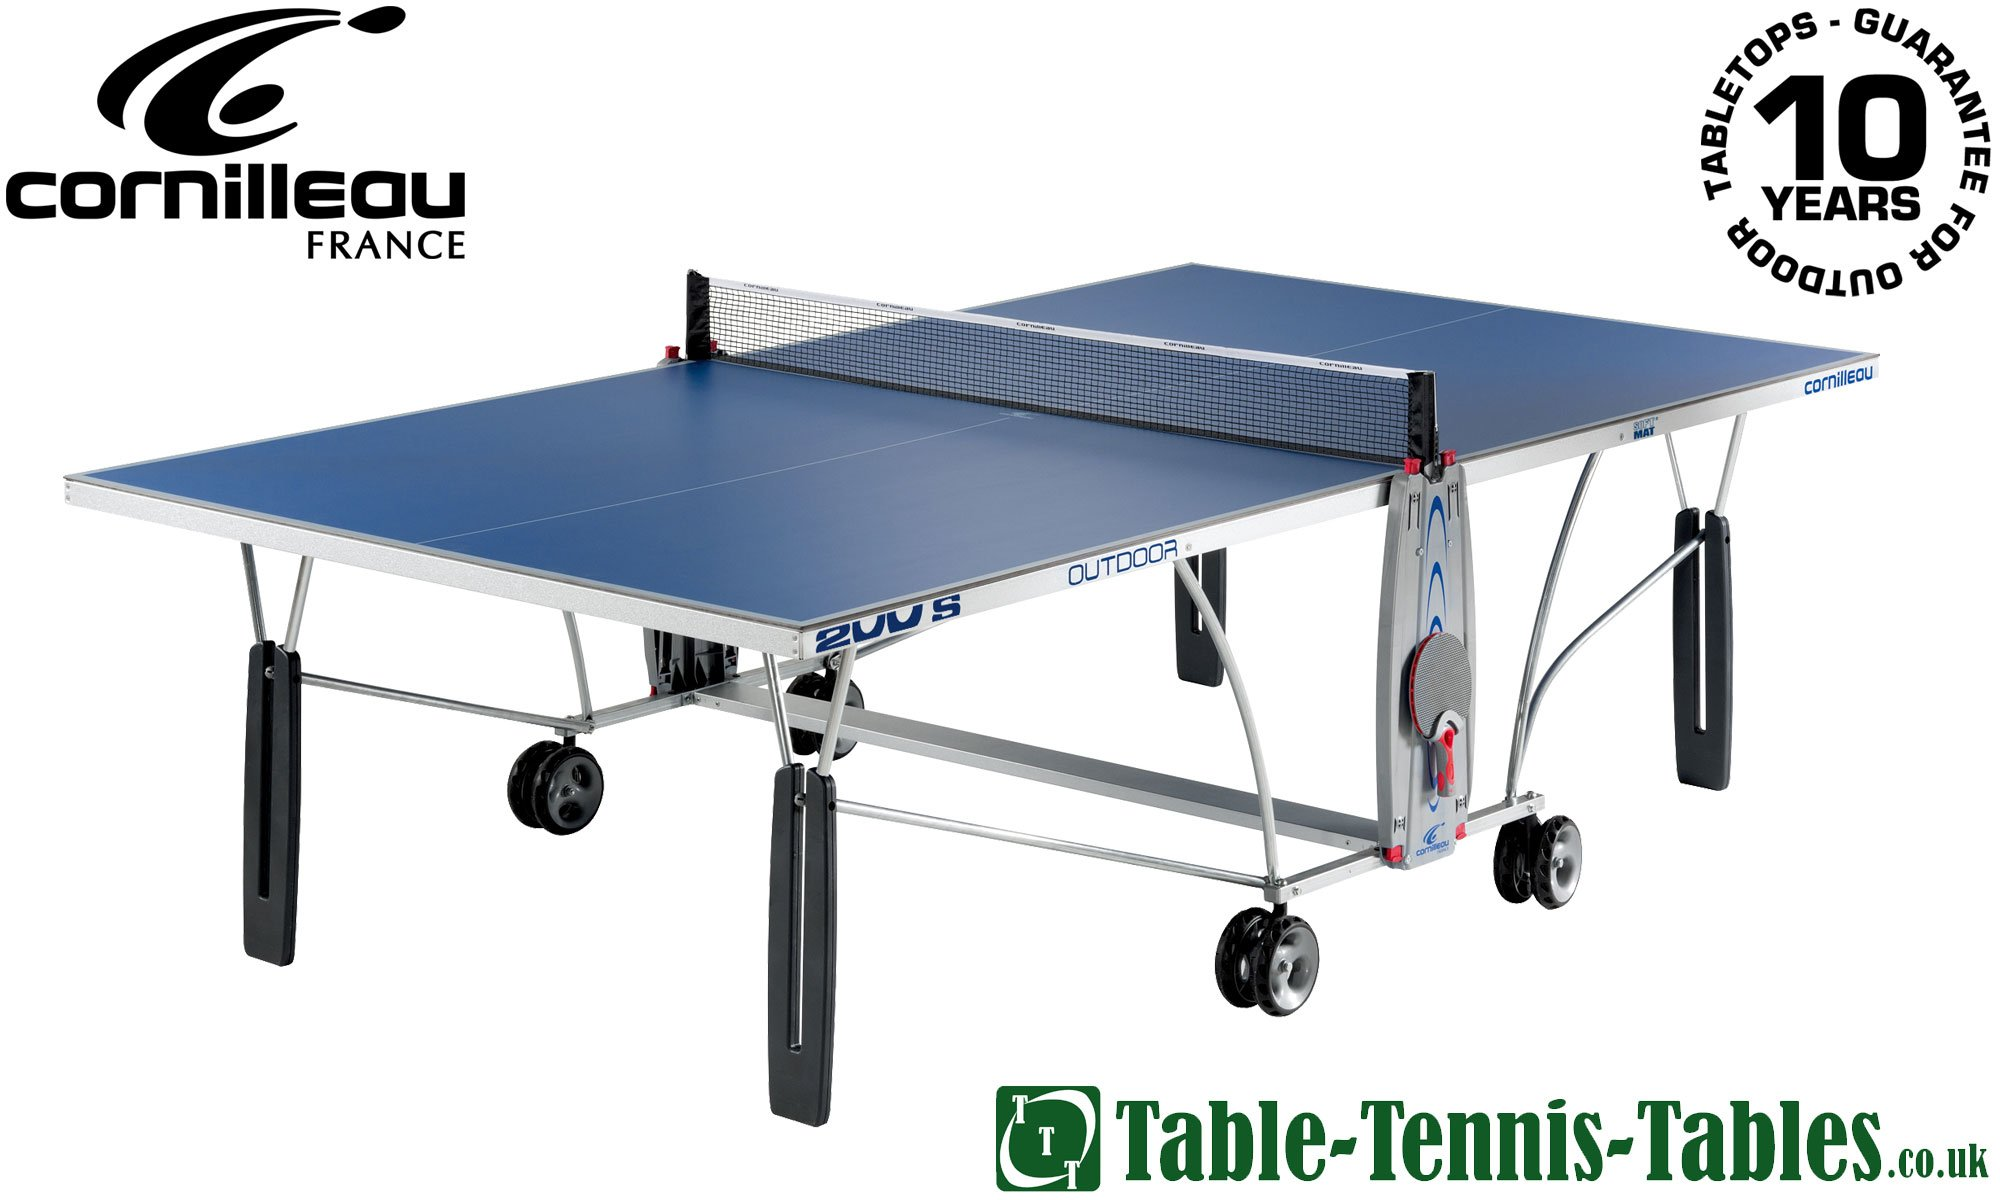 Cornilleau sport 200s discontinued - Full size table tennis table dimensions ...